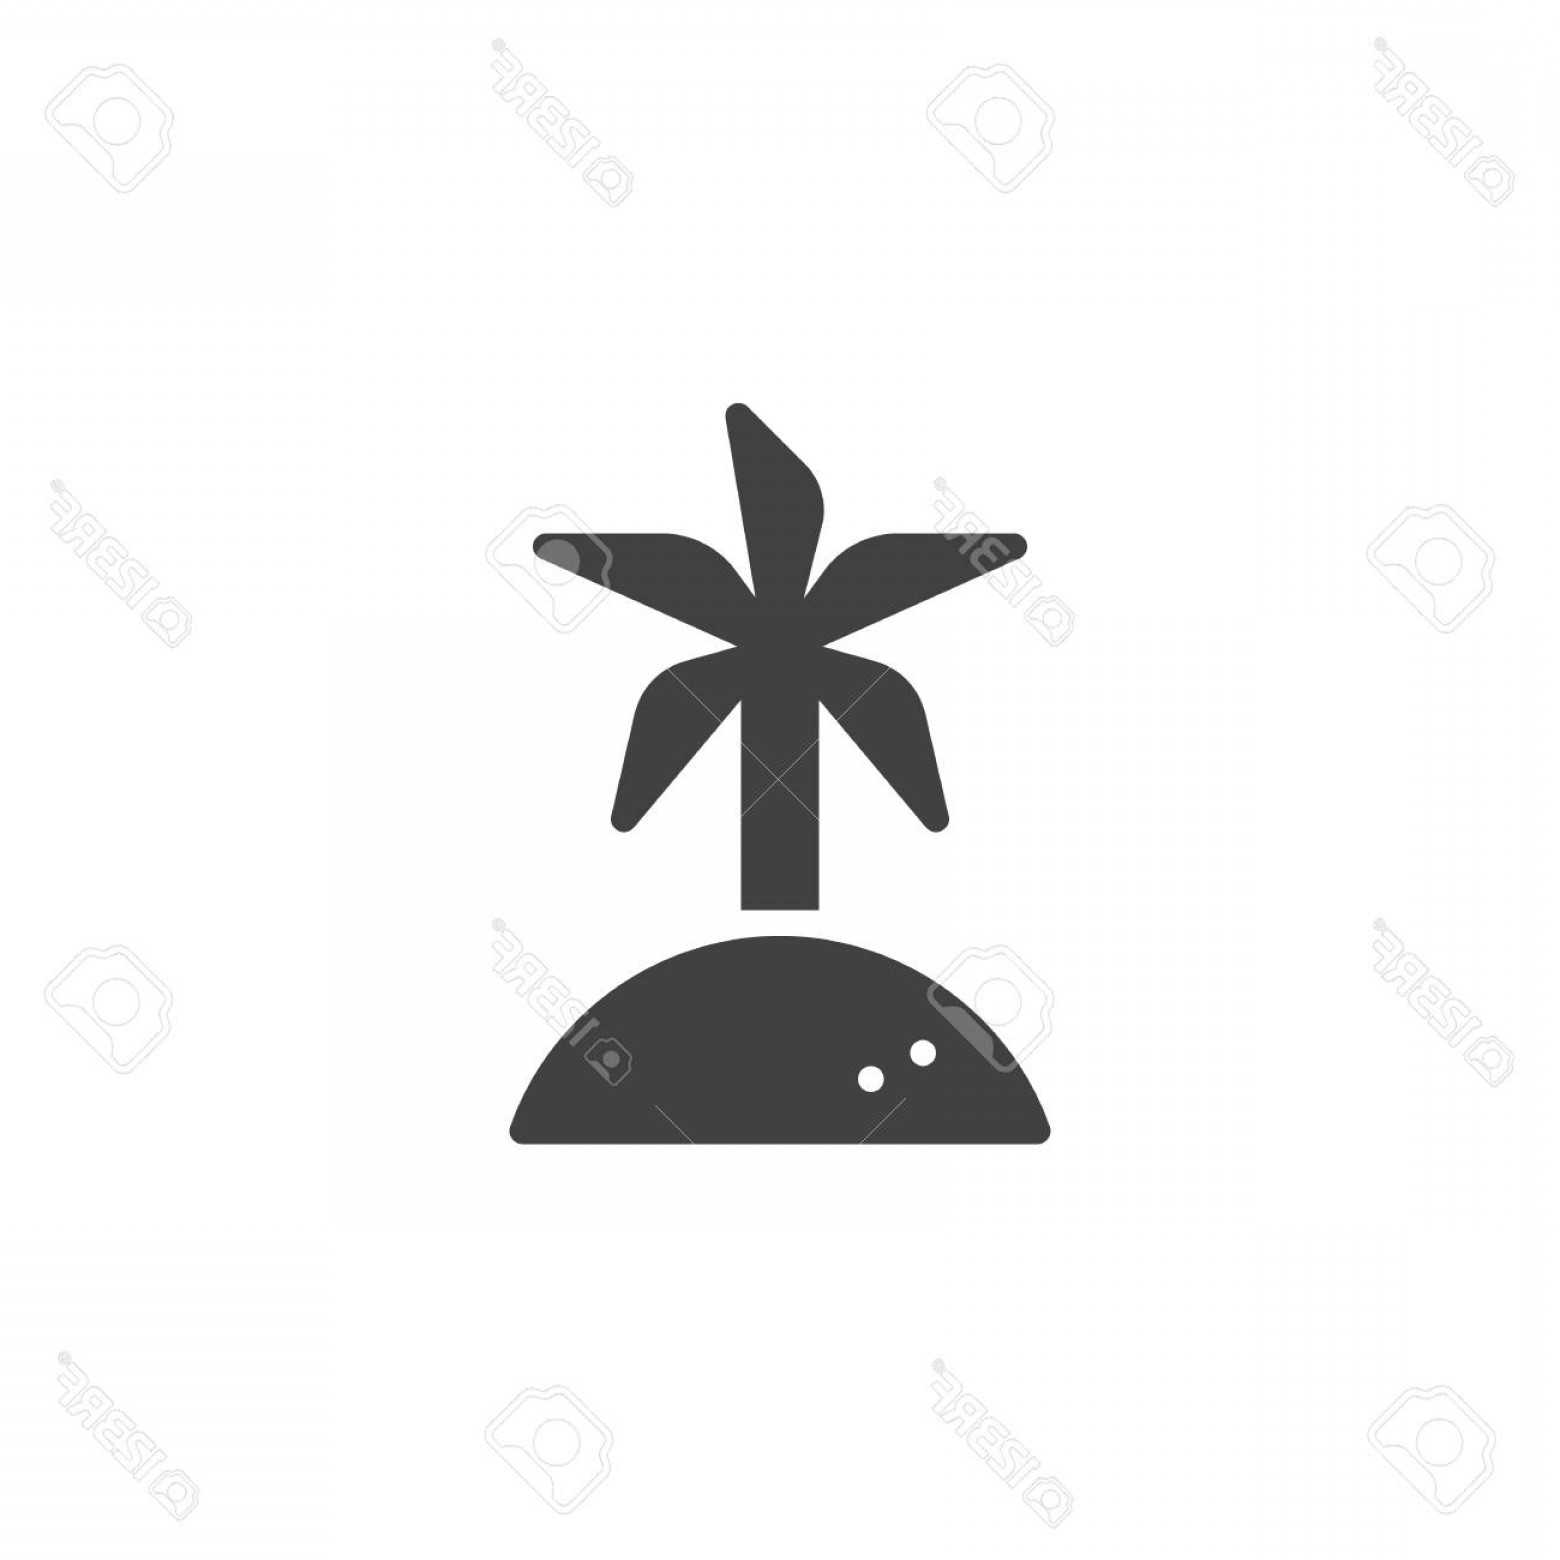 Simple Palm Tree Vector: Photostock Vector Coconut Palm Tree Vector Icon Filled Flat Sign For Mobile Concept And Web Design Island Travel Simpl